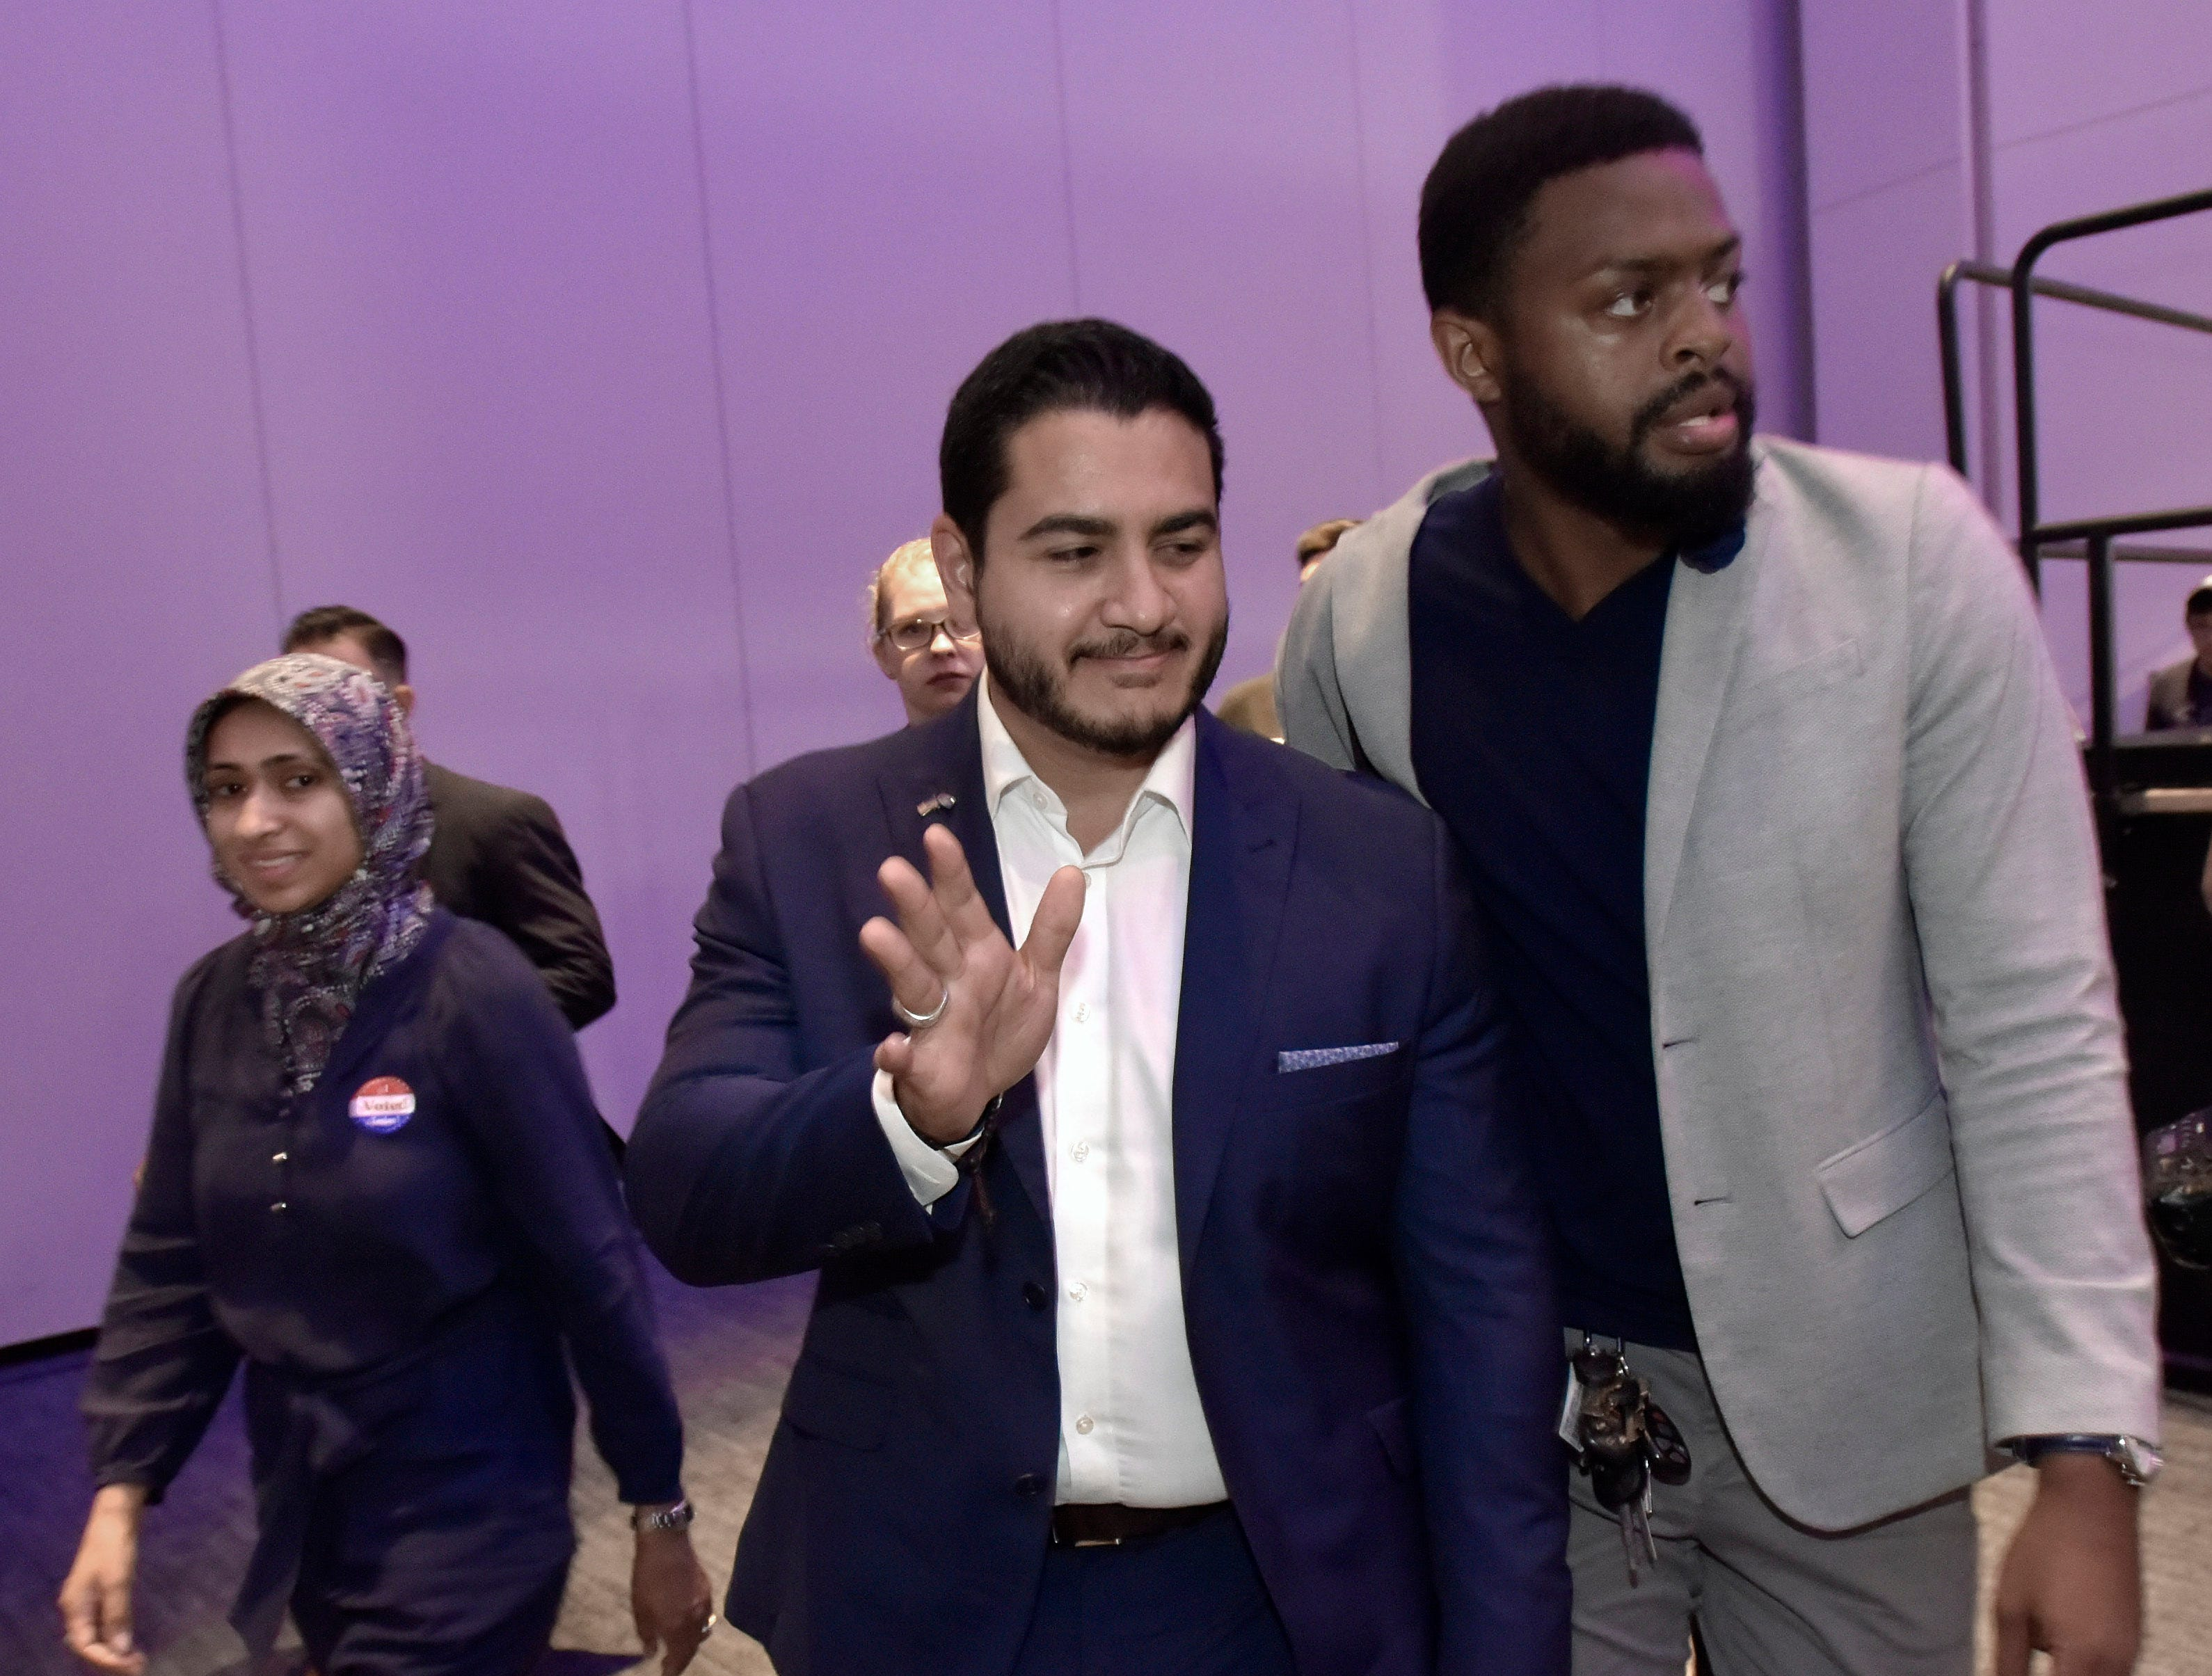 Dr. Abdul El-Sayed, center, is escorted from the stage as his wife, Dr. Sarah Jukaku, MD, left, stays close.